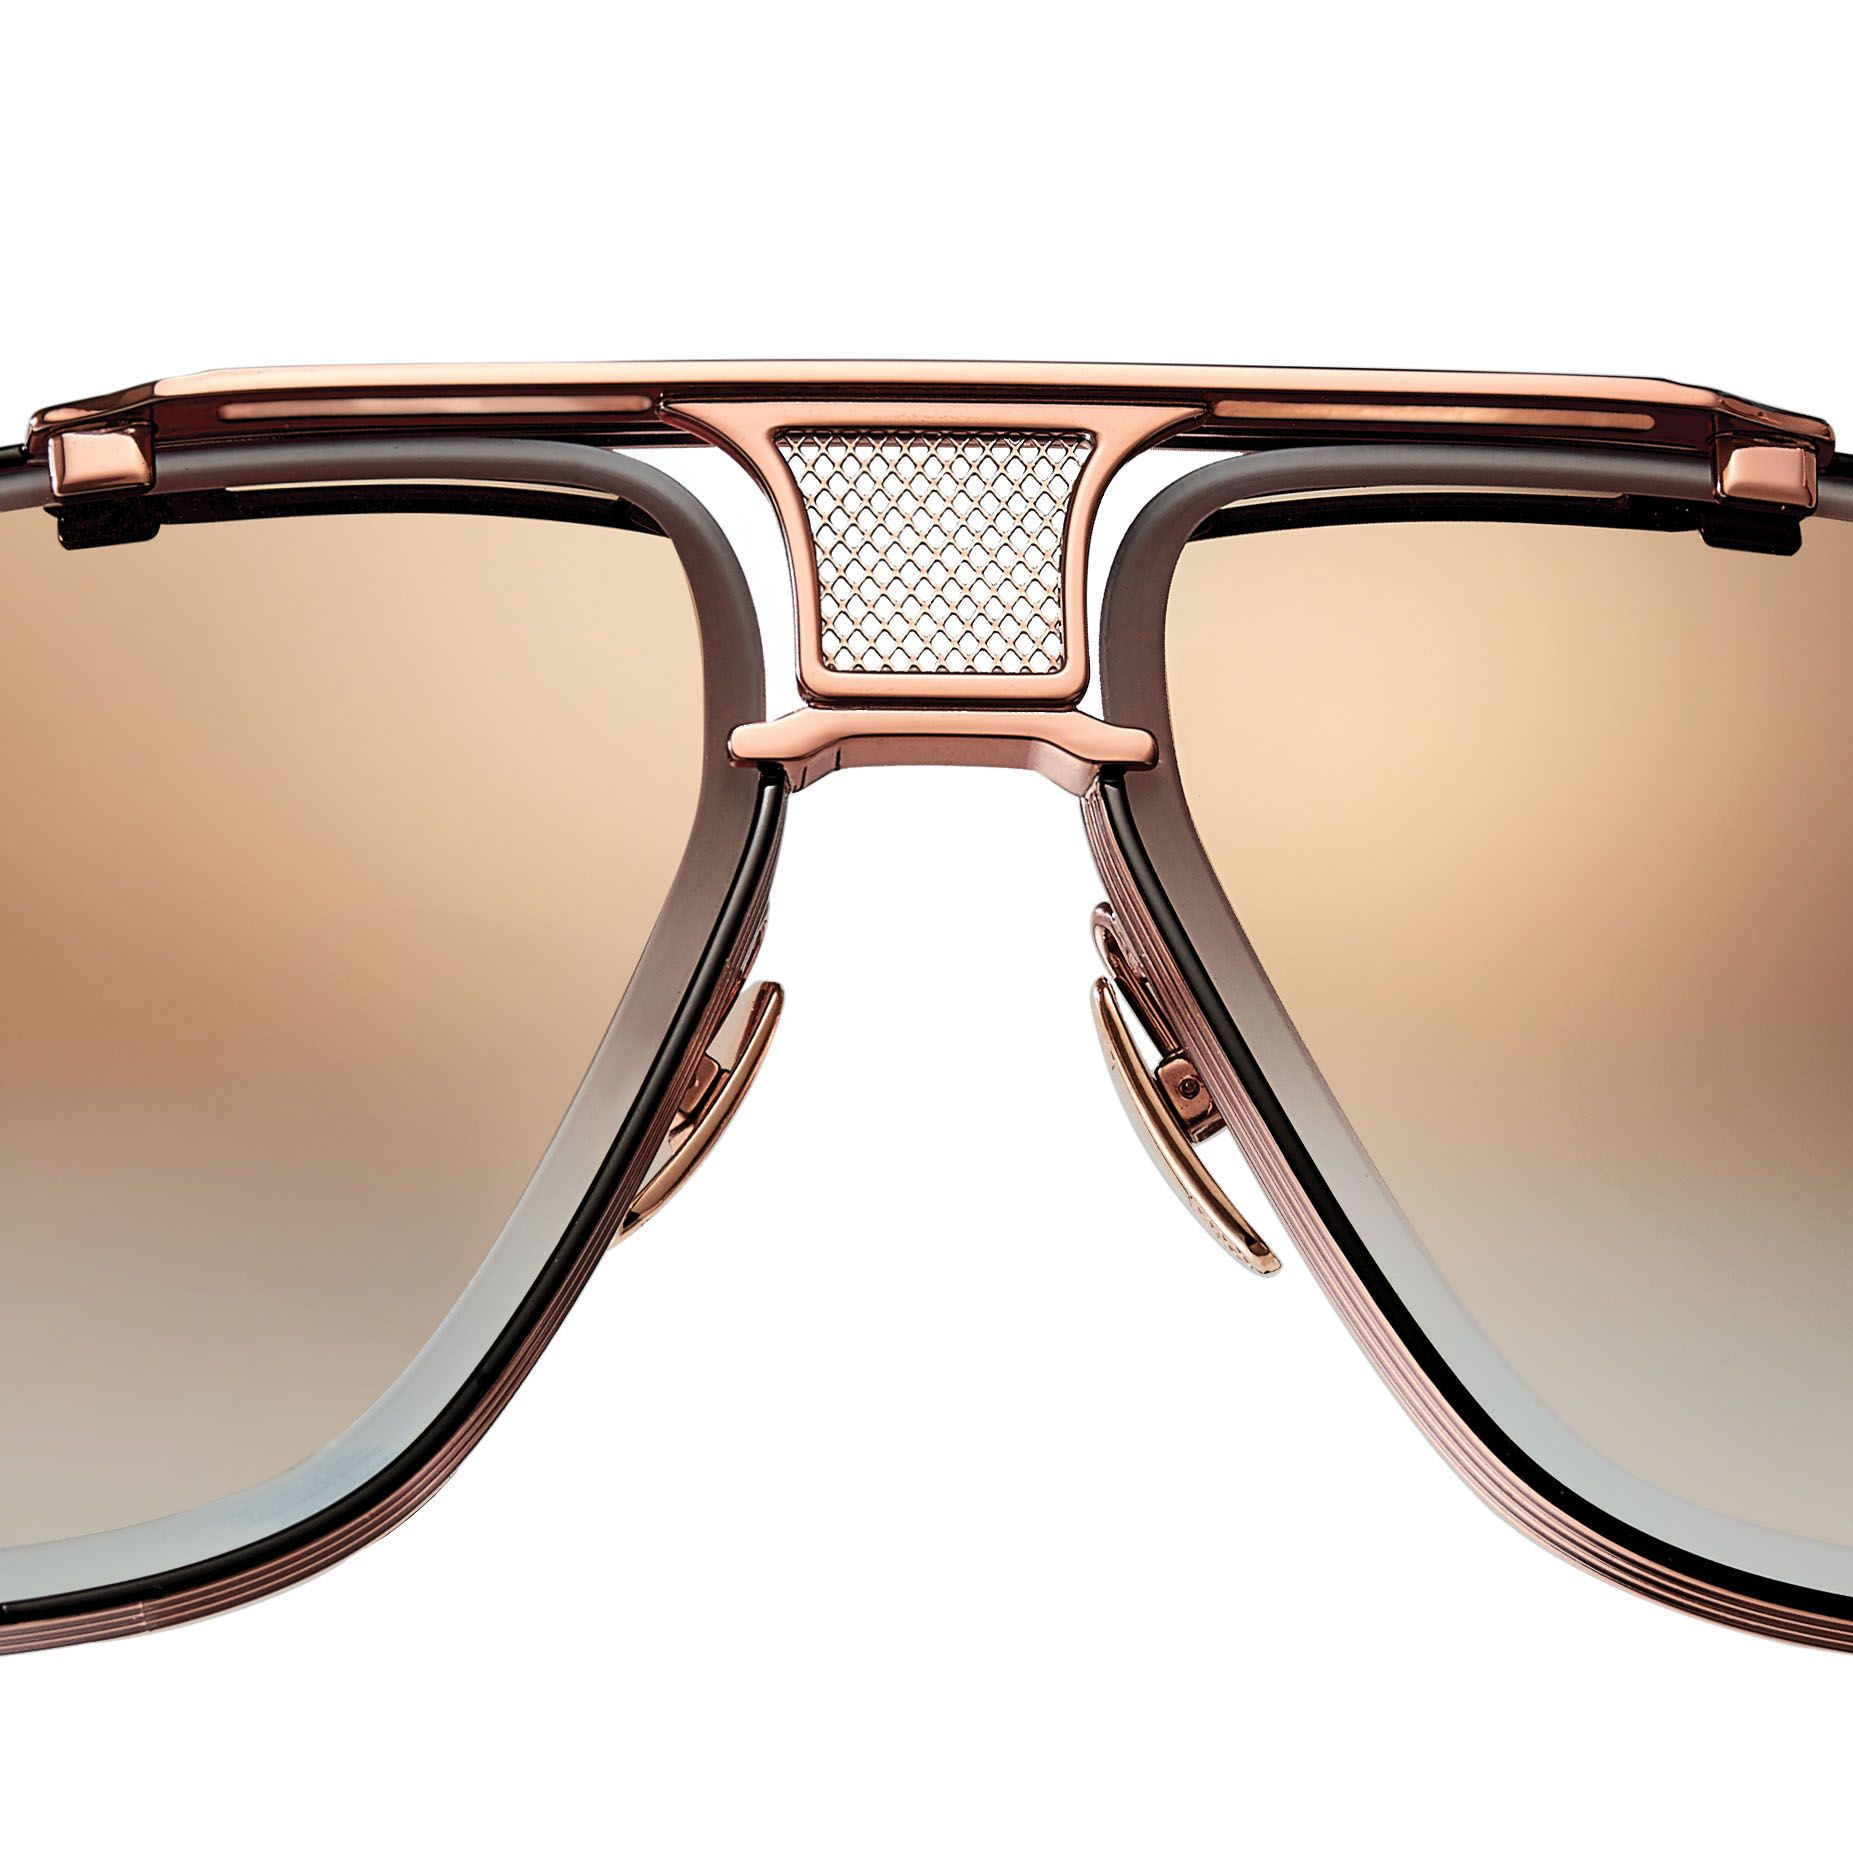 06febbb7298 The ROSE GOLD Mach-Five    A limited edition run of only 500 pieces.   DITALTD